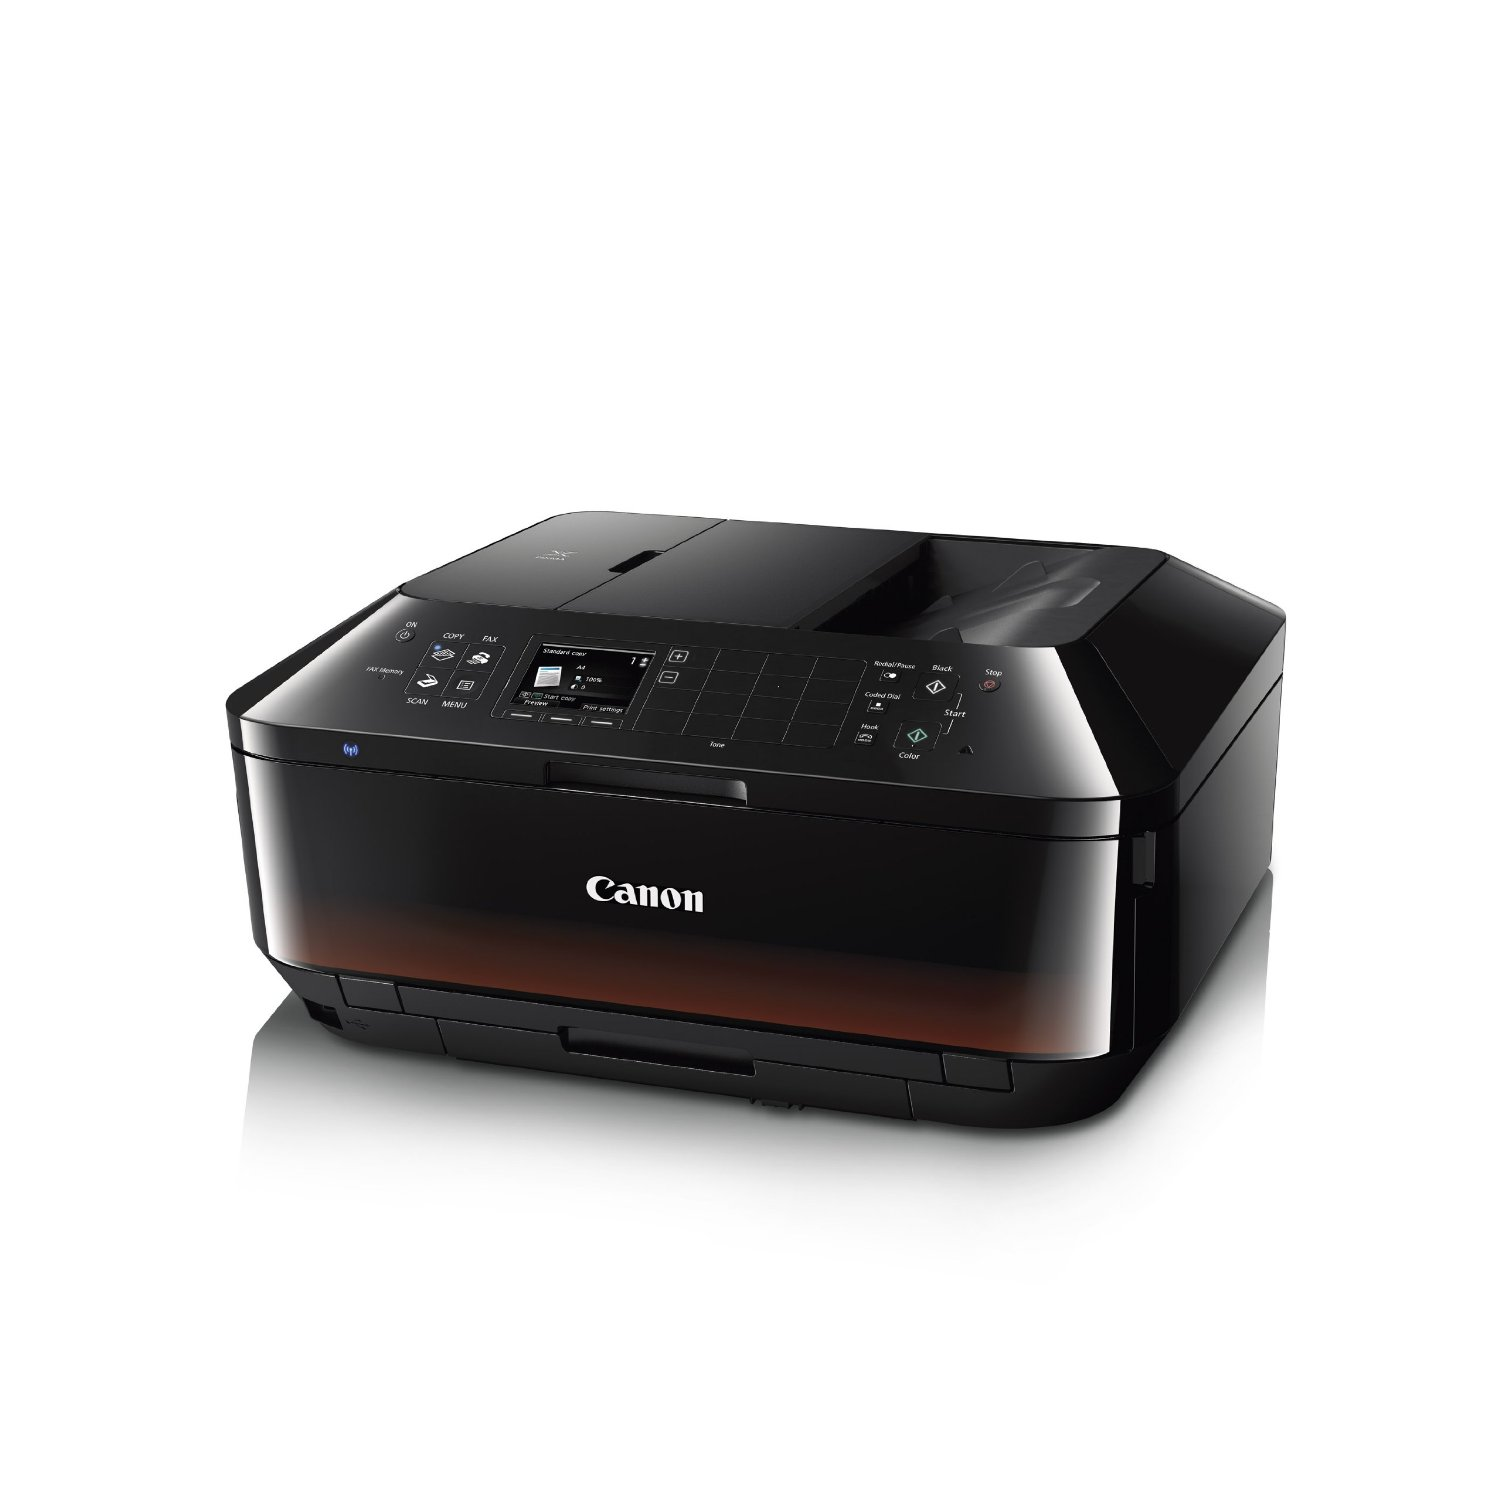 Wireless Printer Printing From Ipad To Canon Wireless Printer